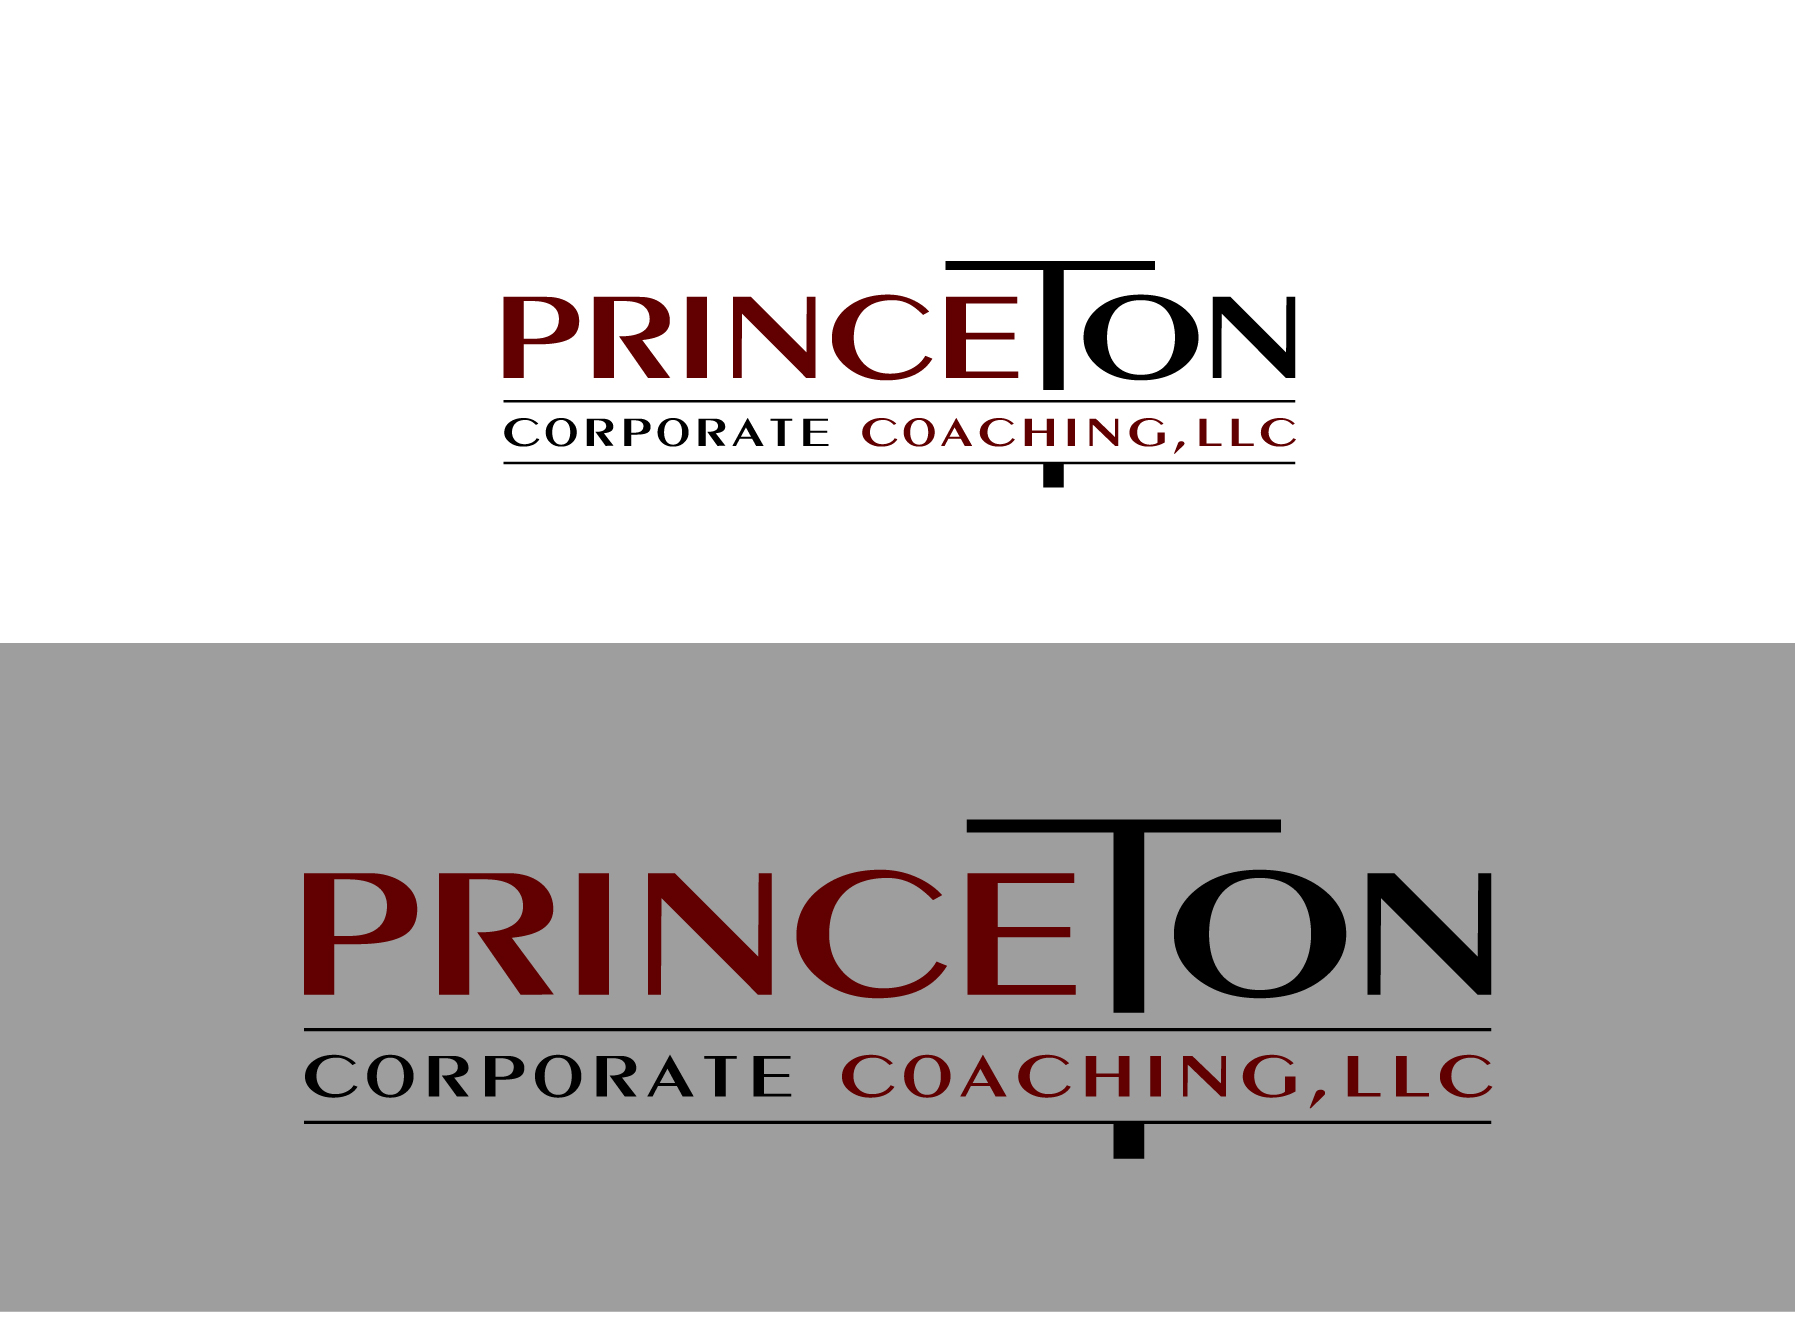 Logo Design by Wilfredo Mendoza - Entry No. 197 in the Logo Design Contest Unique Logo Design Wanted for Princeton Corporate Coaching, LLC.